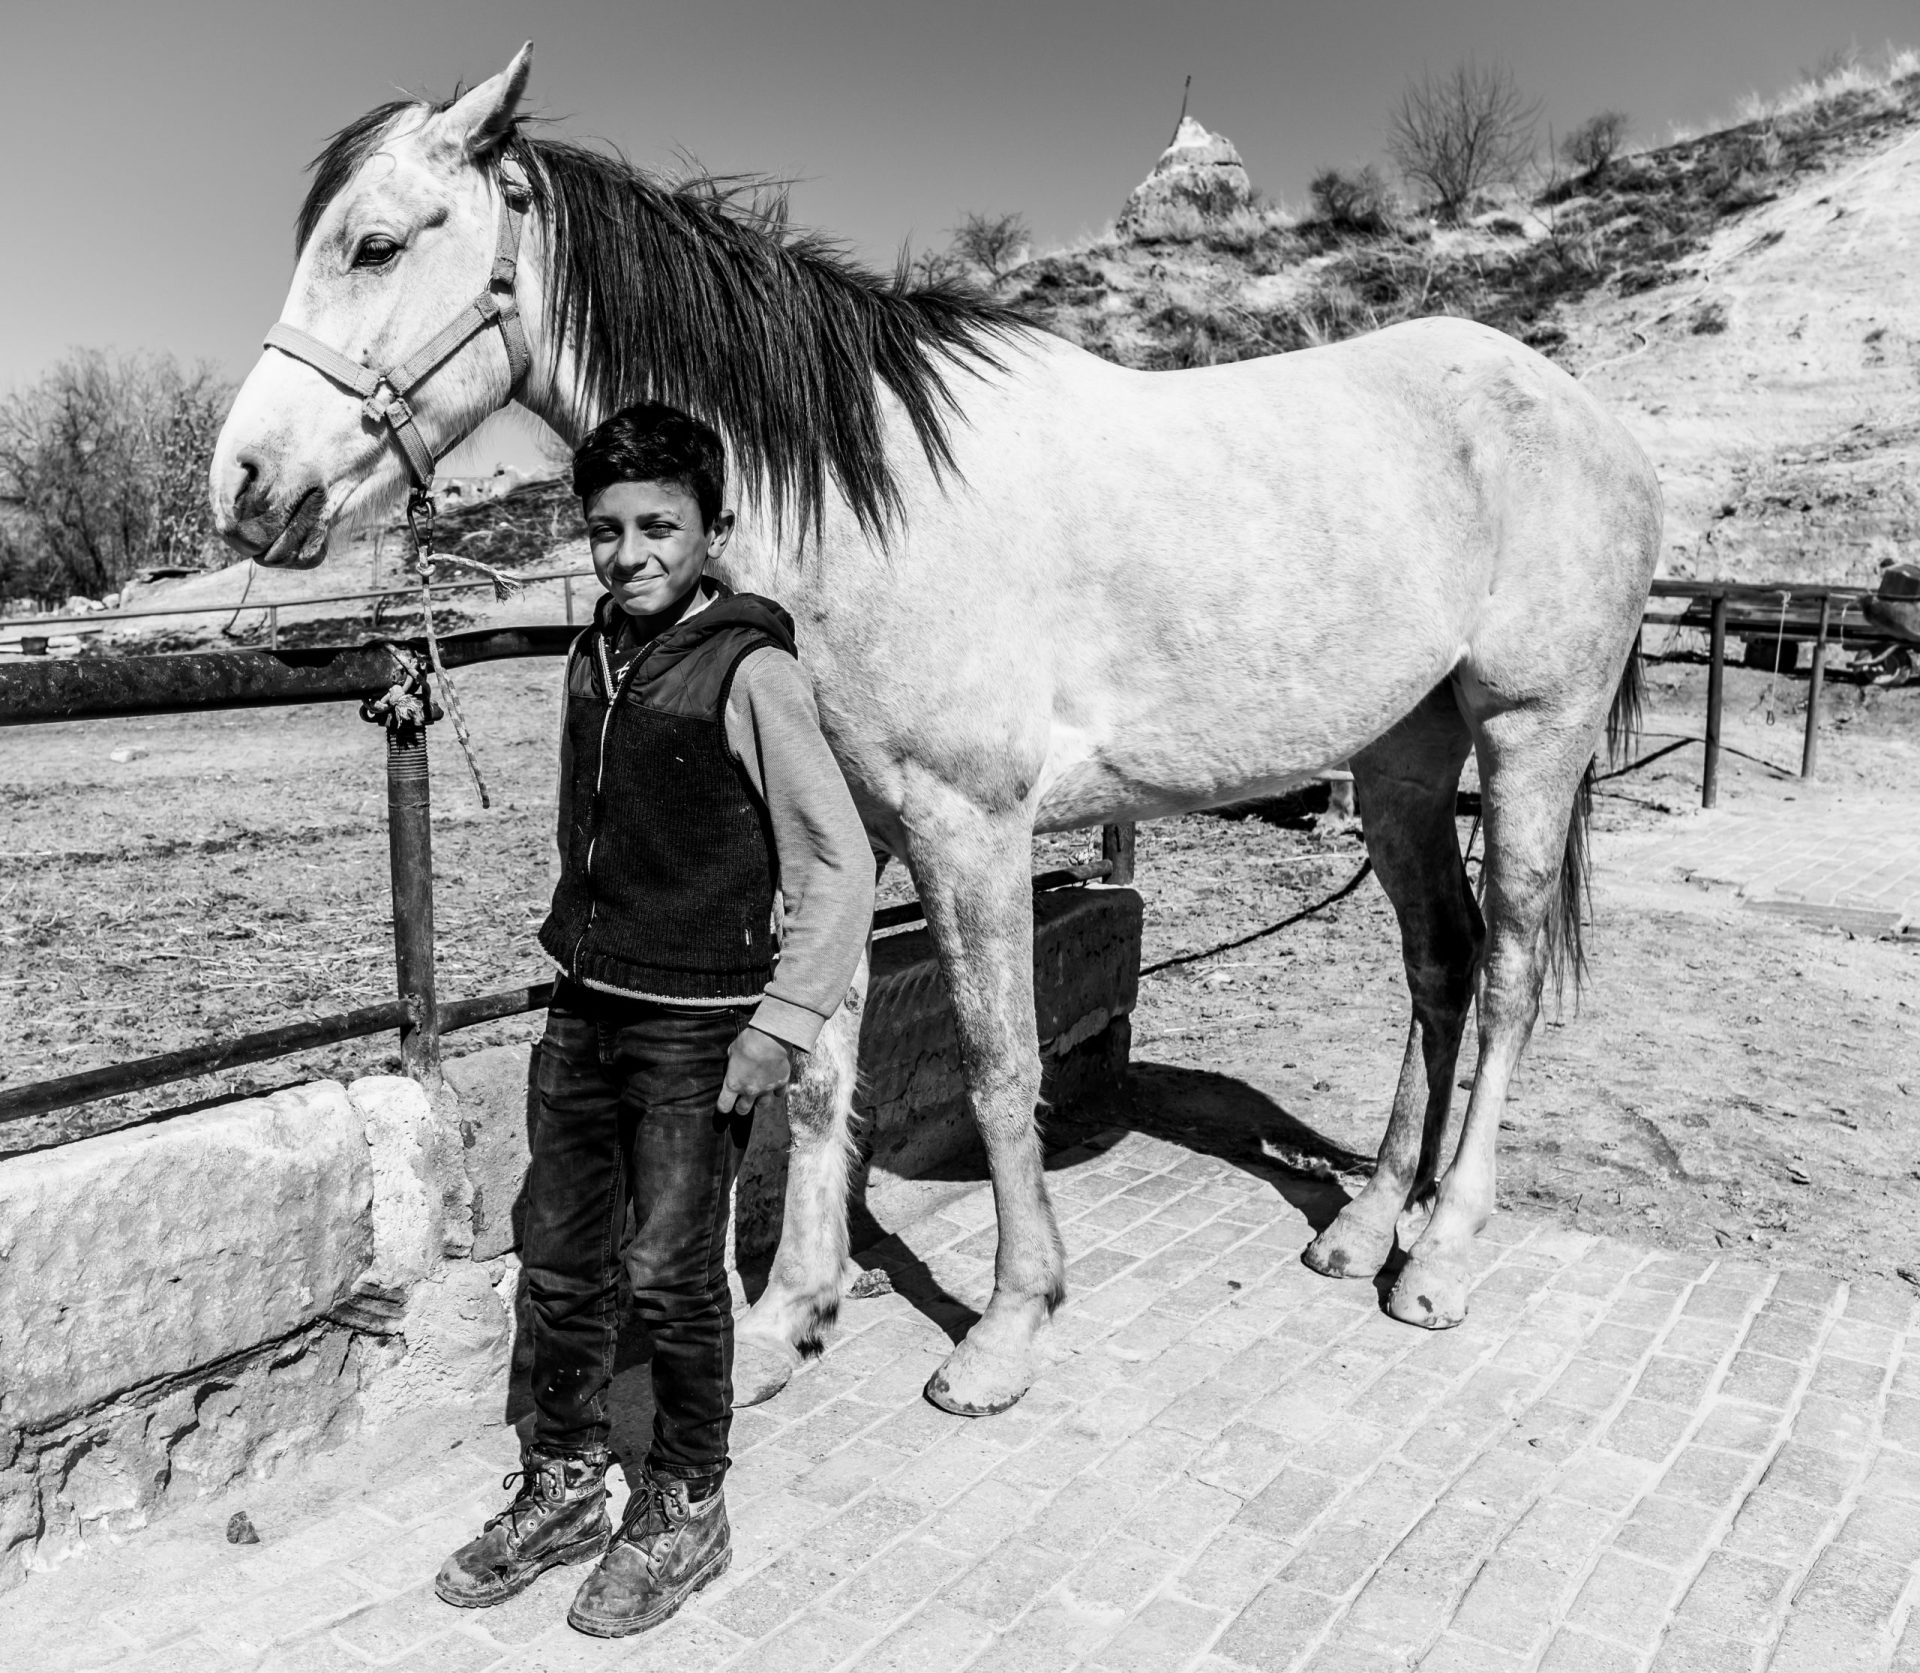 10 Travel Photography Tips - ask locals - portrait of Anatolian Turkish boy posing with horse in Cappadocia